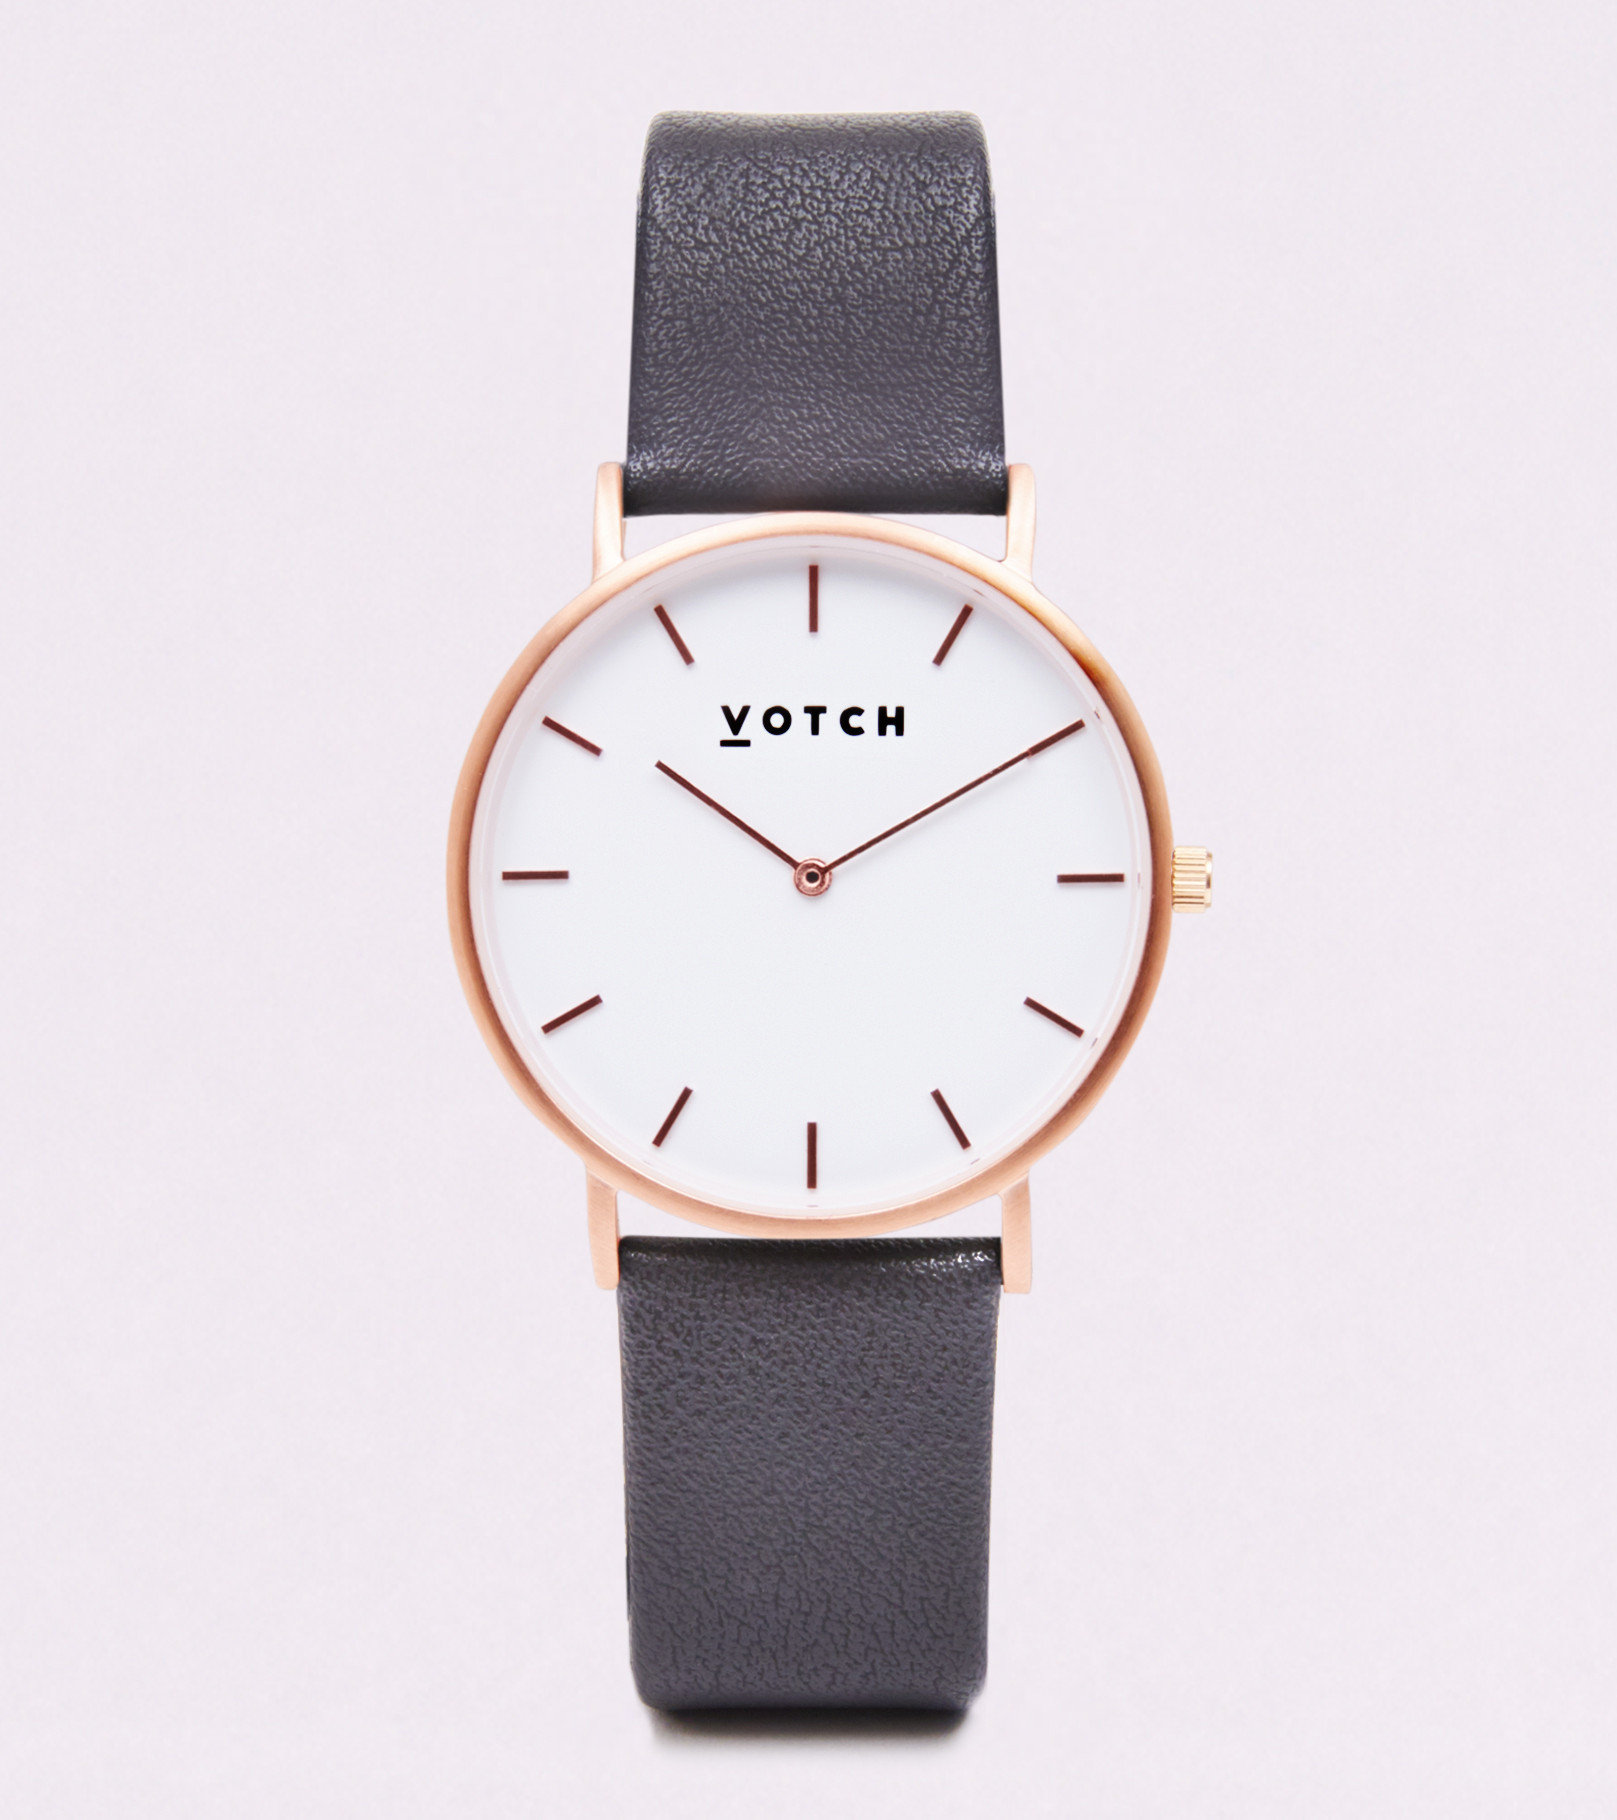 VOTCH   LIMITED EDITION- THE DARK GREY & ROSE GOLD  €141